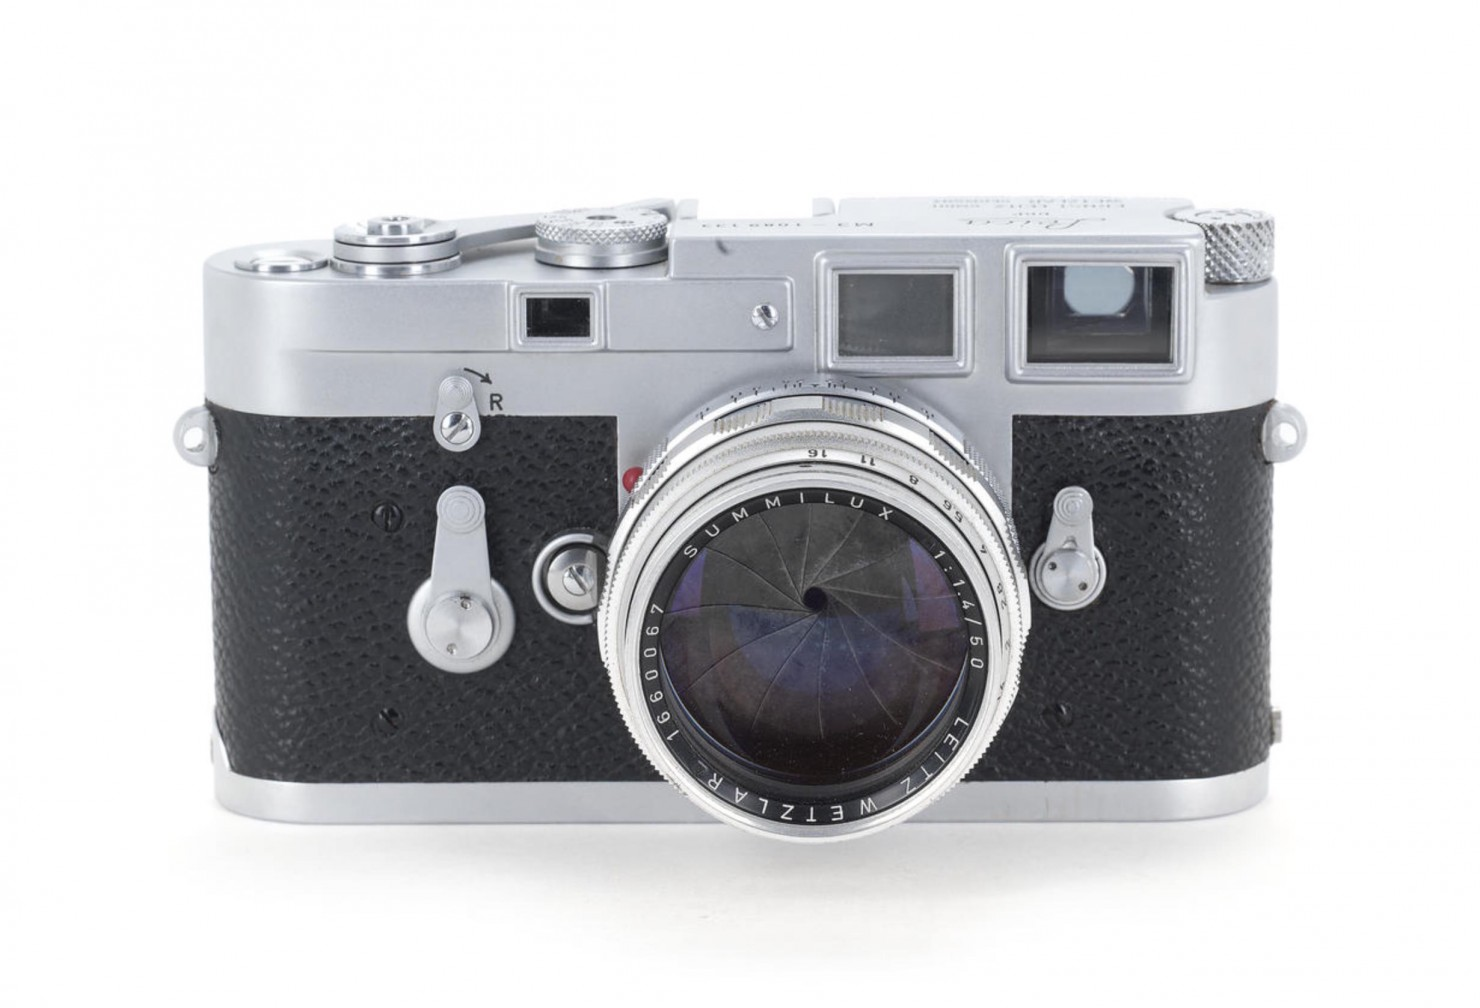 Leica M3 Camera Front